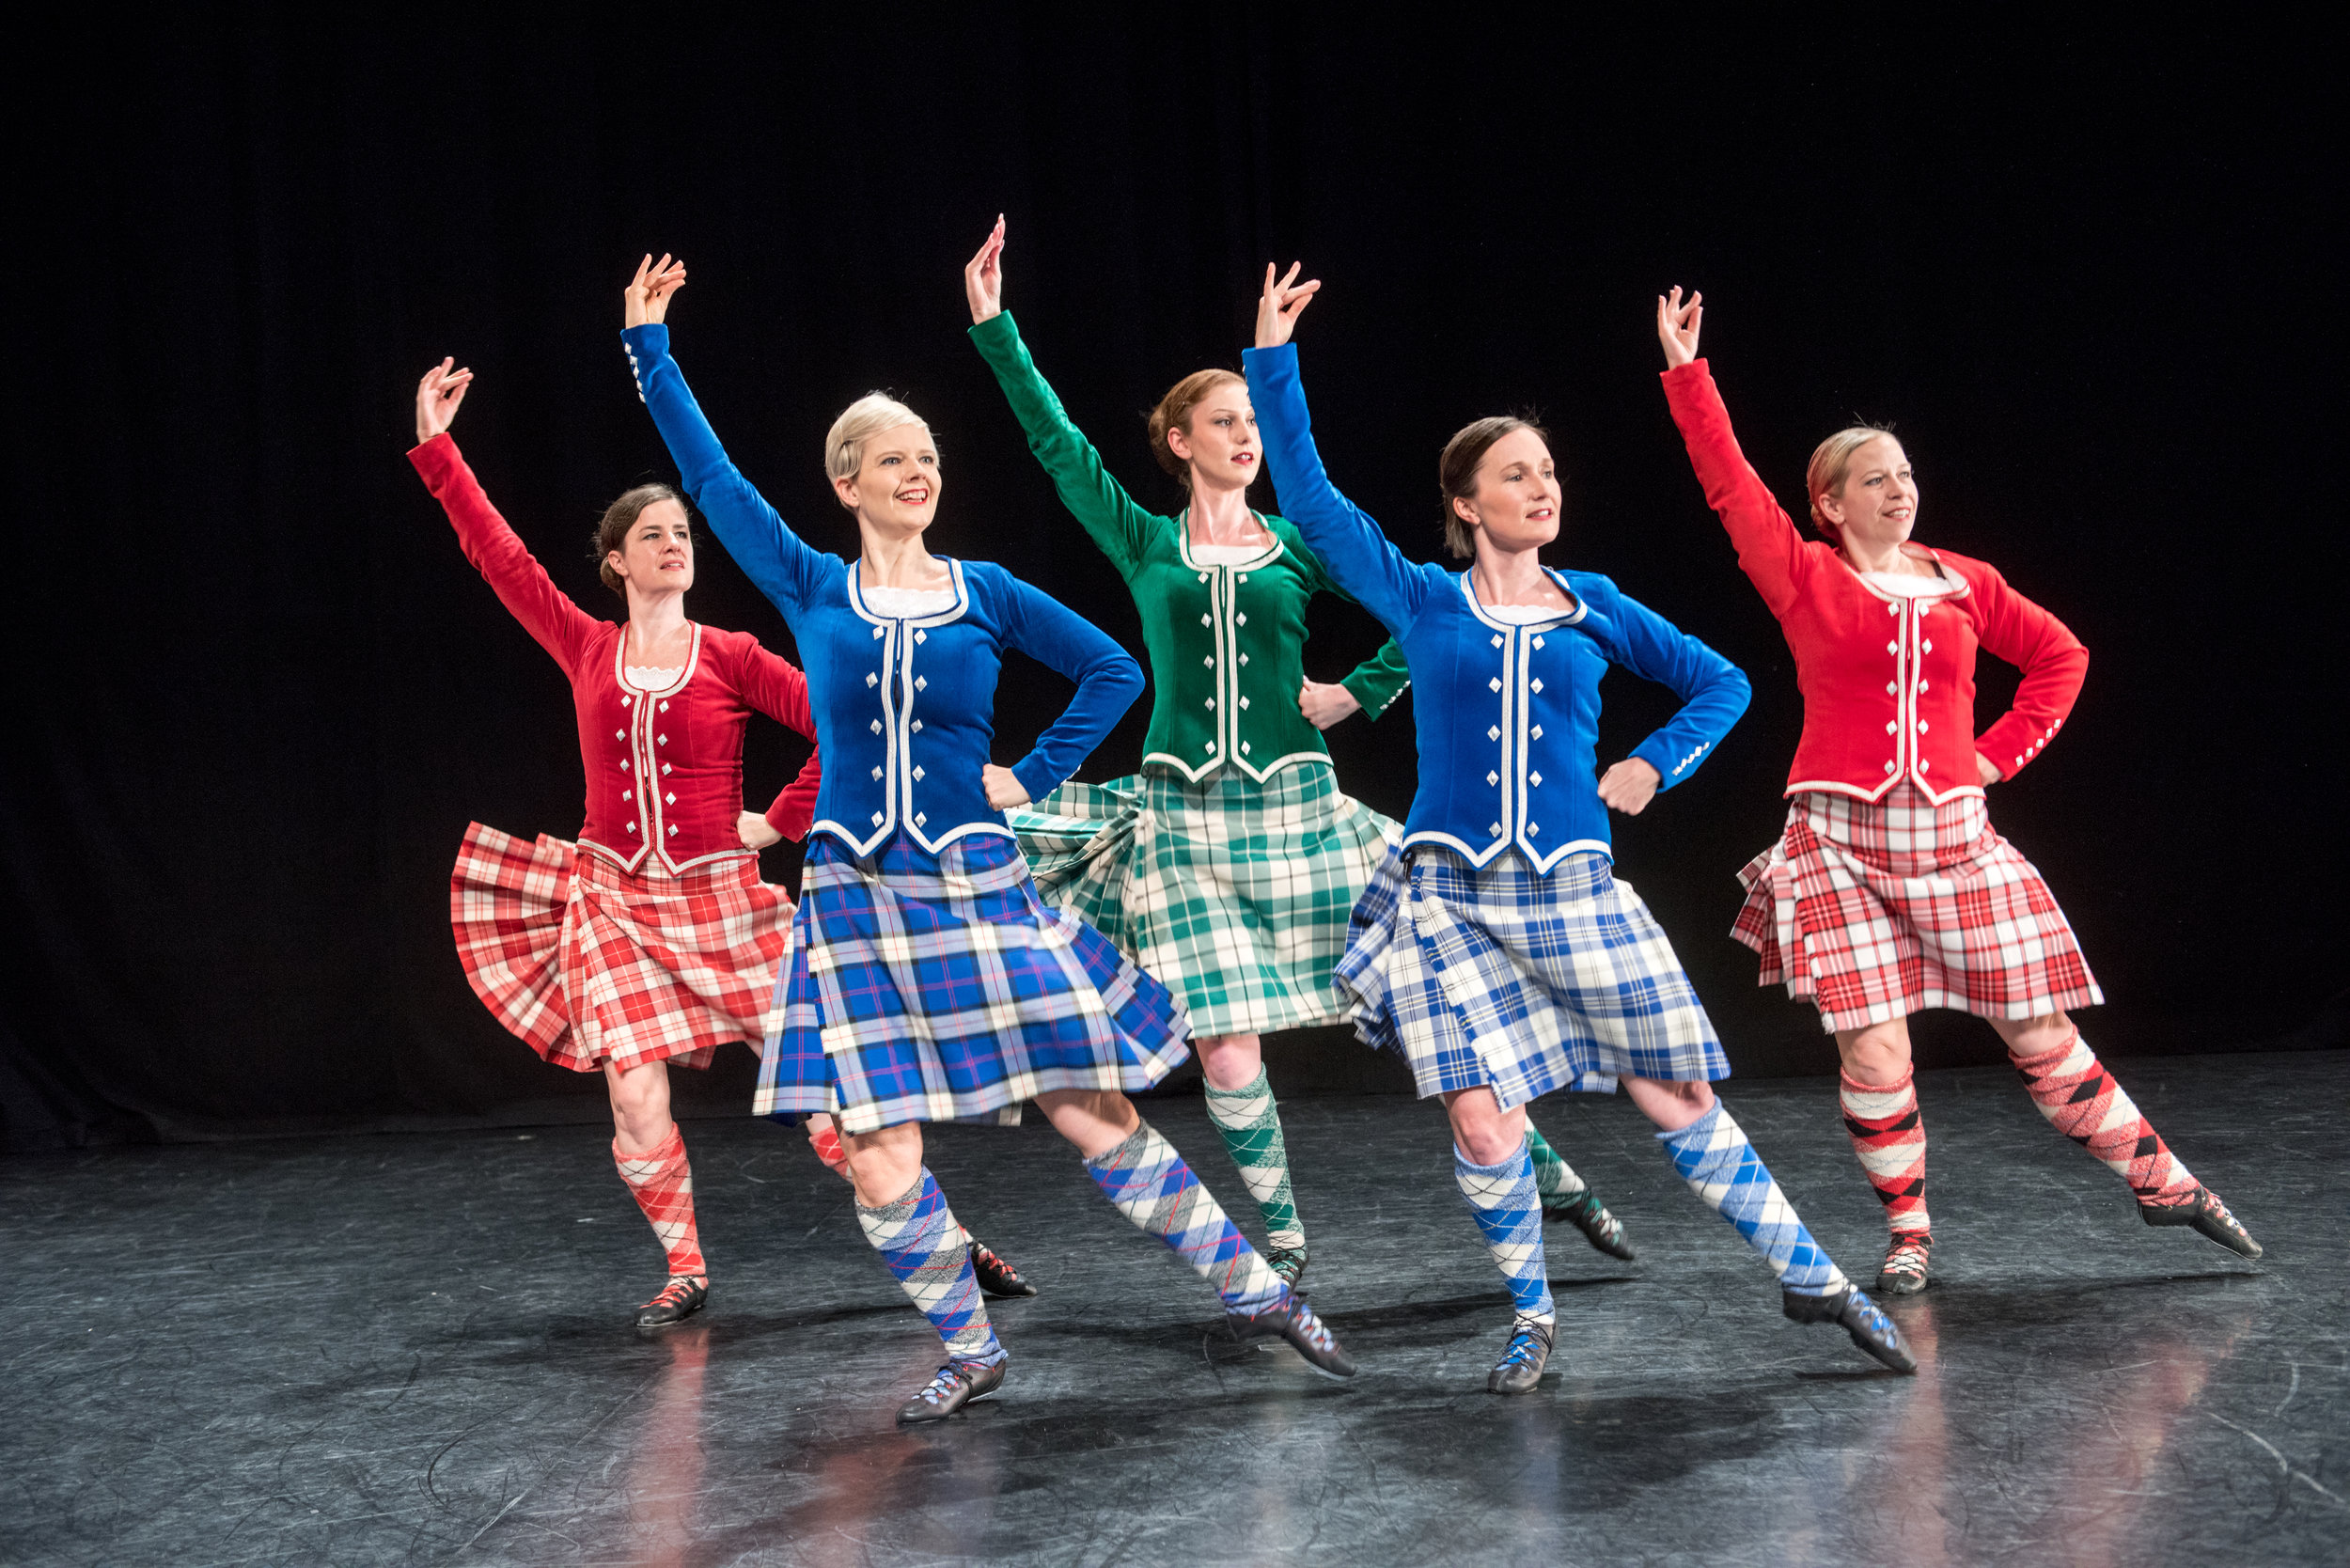 Premier Scottish Highland Dancers